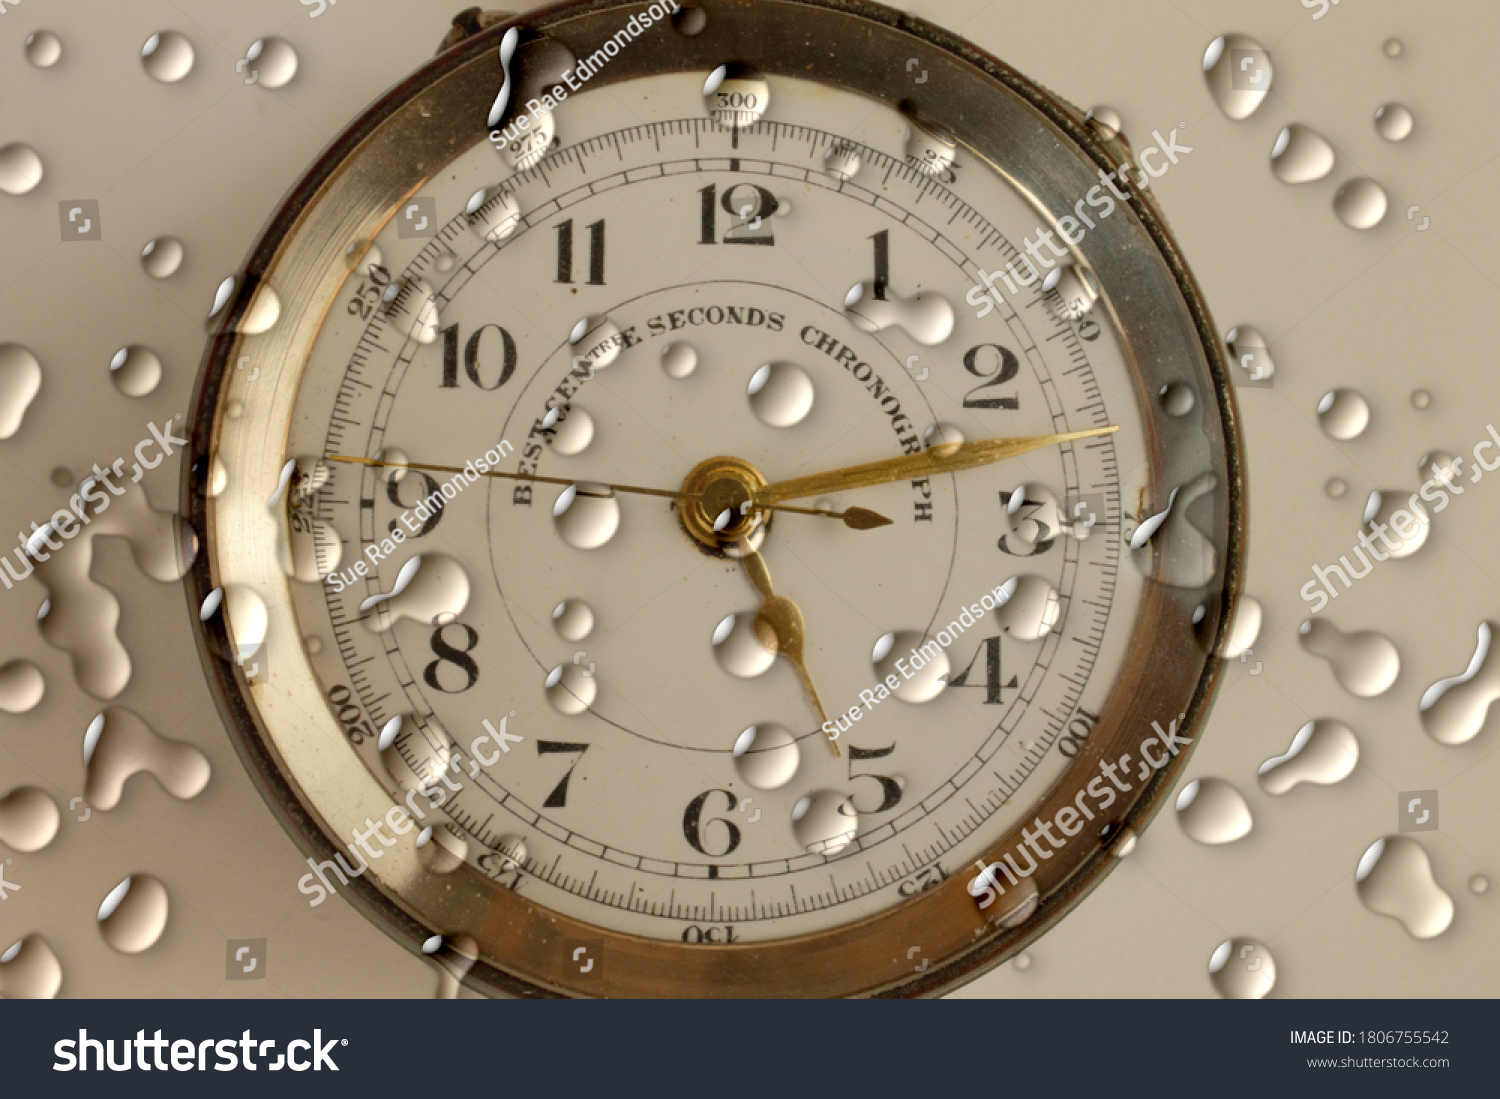 stock-photo-water-droplets-on-a-chronogr